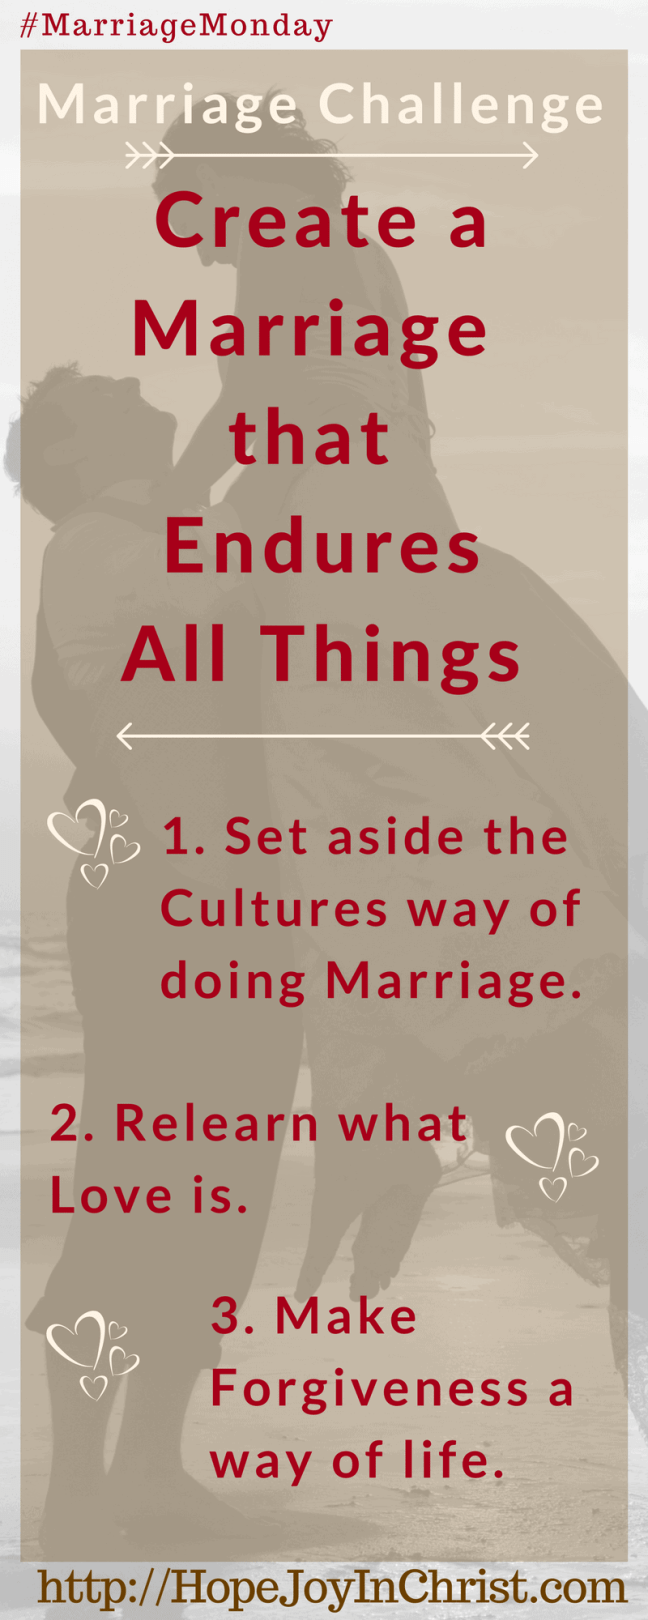 How to Create a Marriage Where Love Endures All Things - #MarriageChallenge 3 things you can do today (#Christianmarriage #Biblicalmarriage #Christianliving Marriage Monday #FindingHopeandJoyinmymarriage)